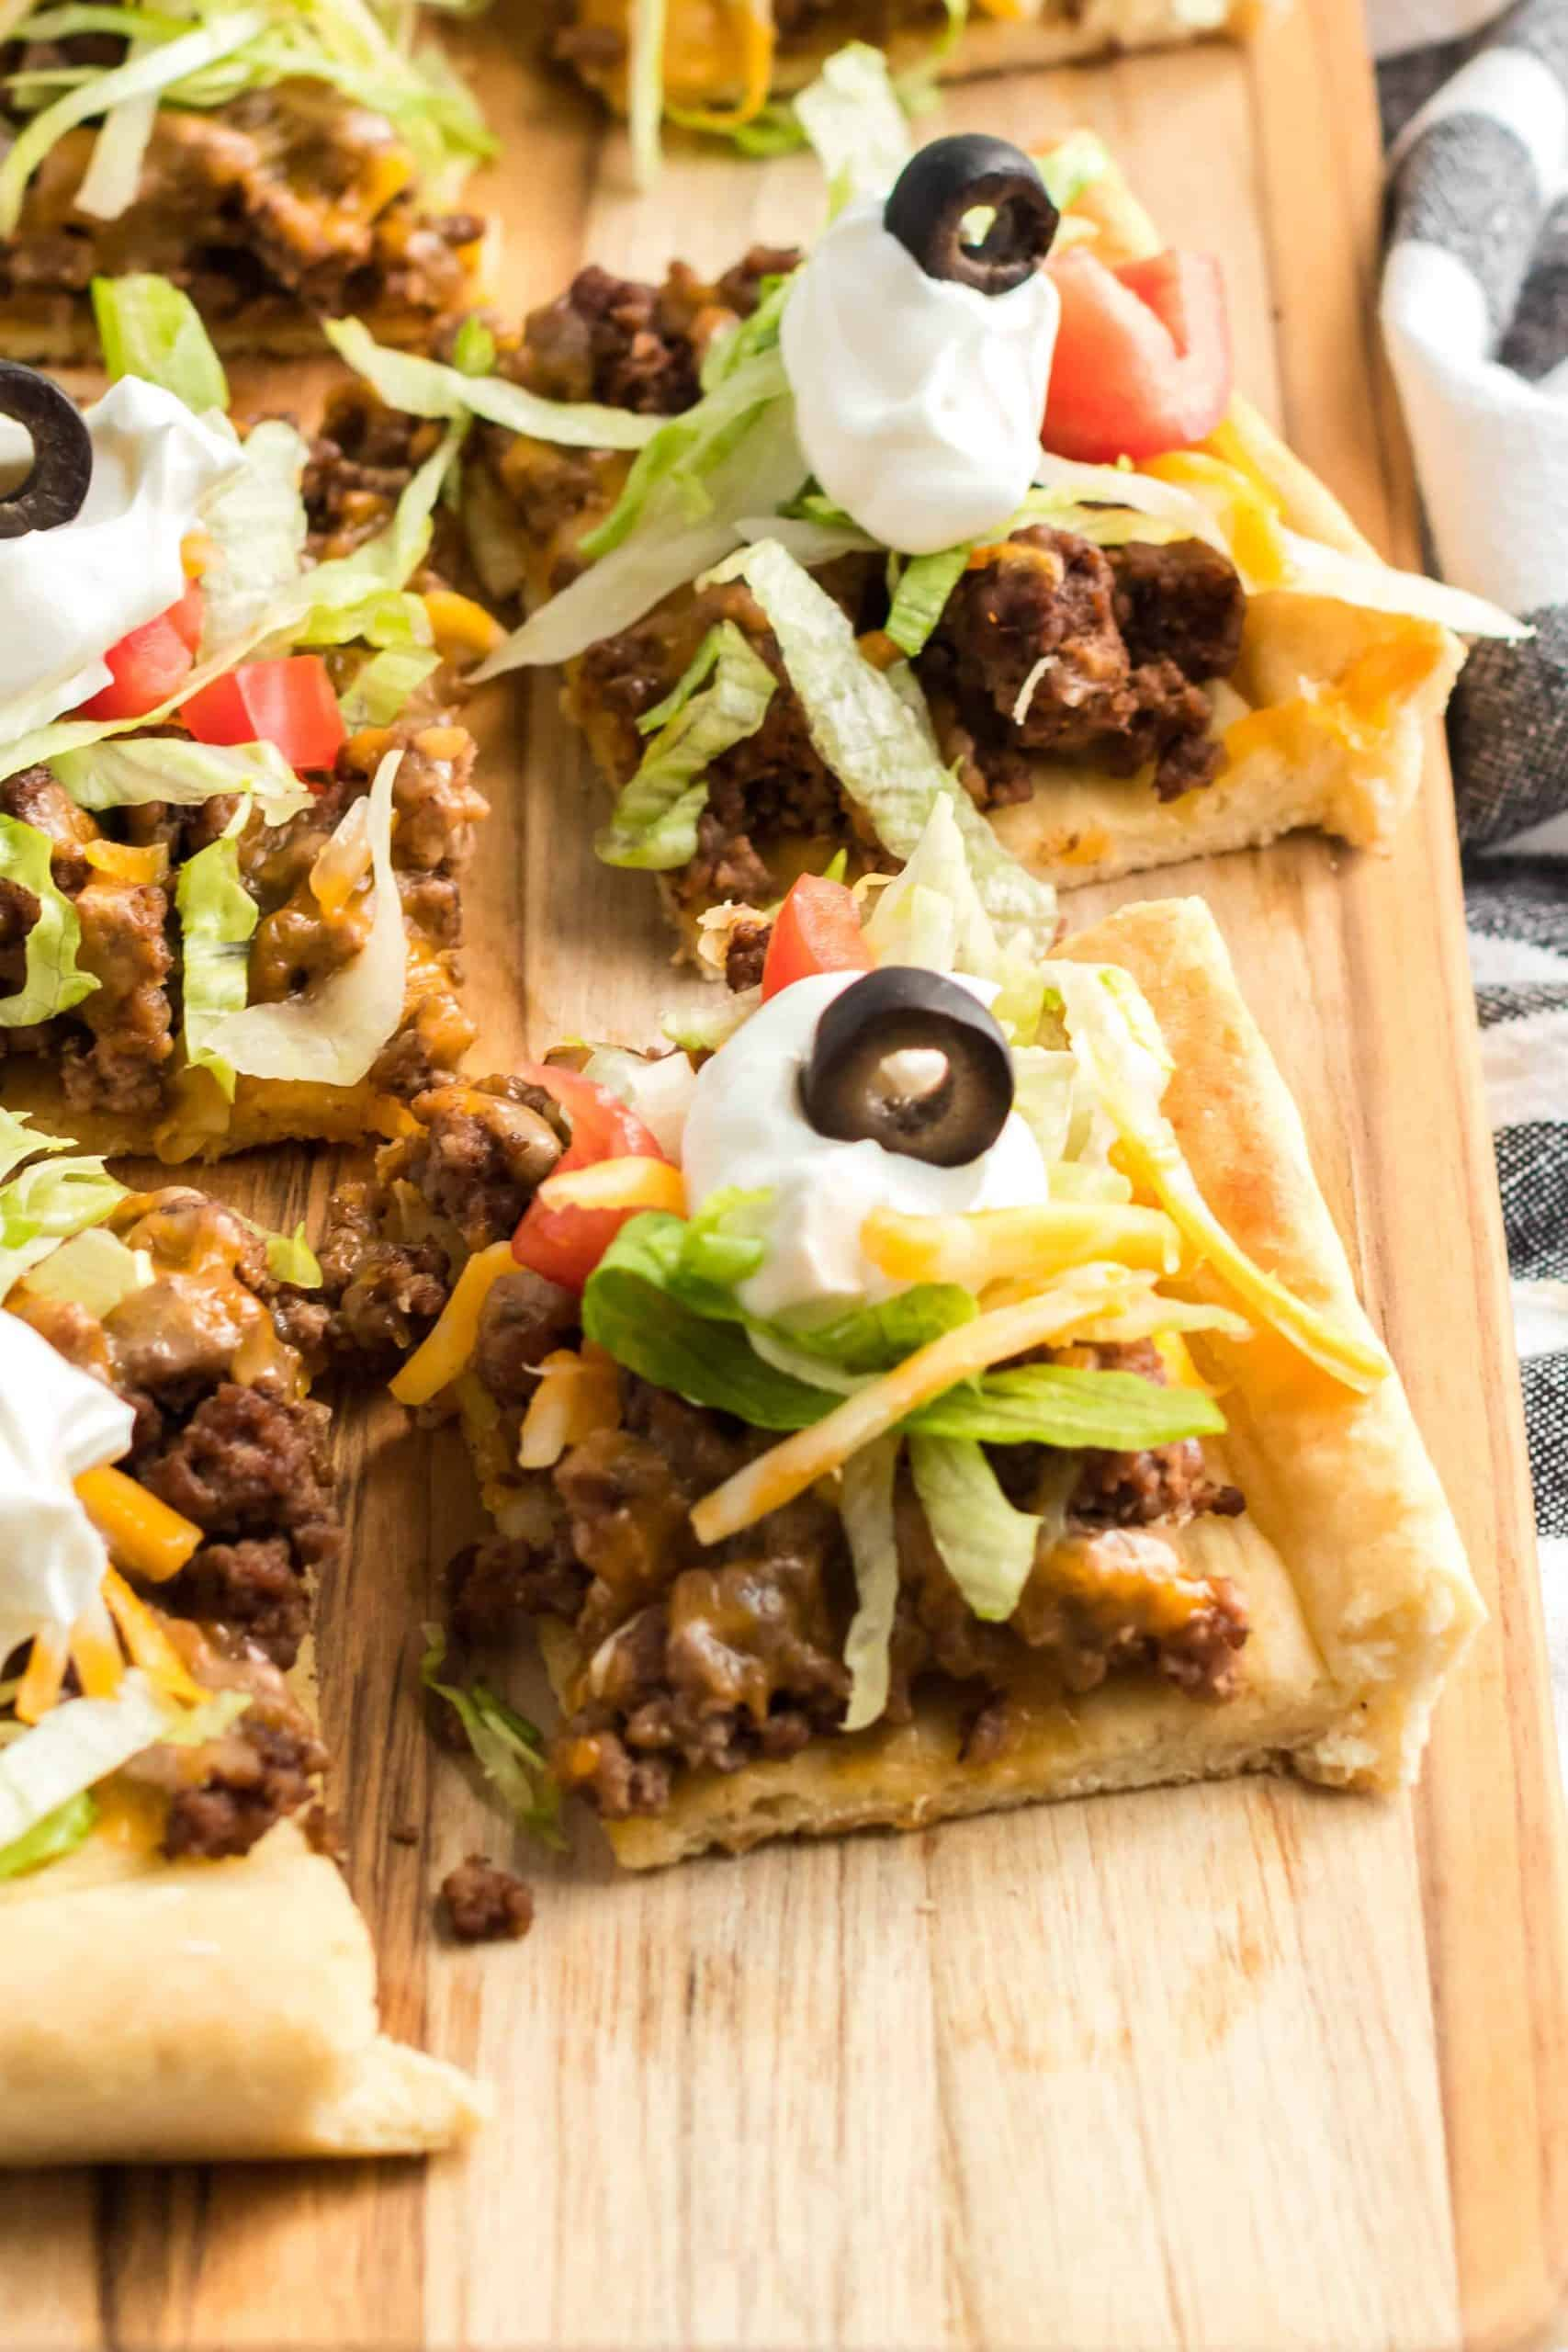 Taco pizza cut into small squares on a wooden cutting board.